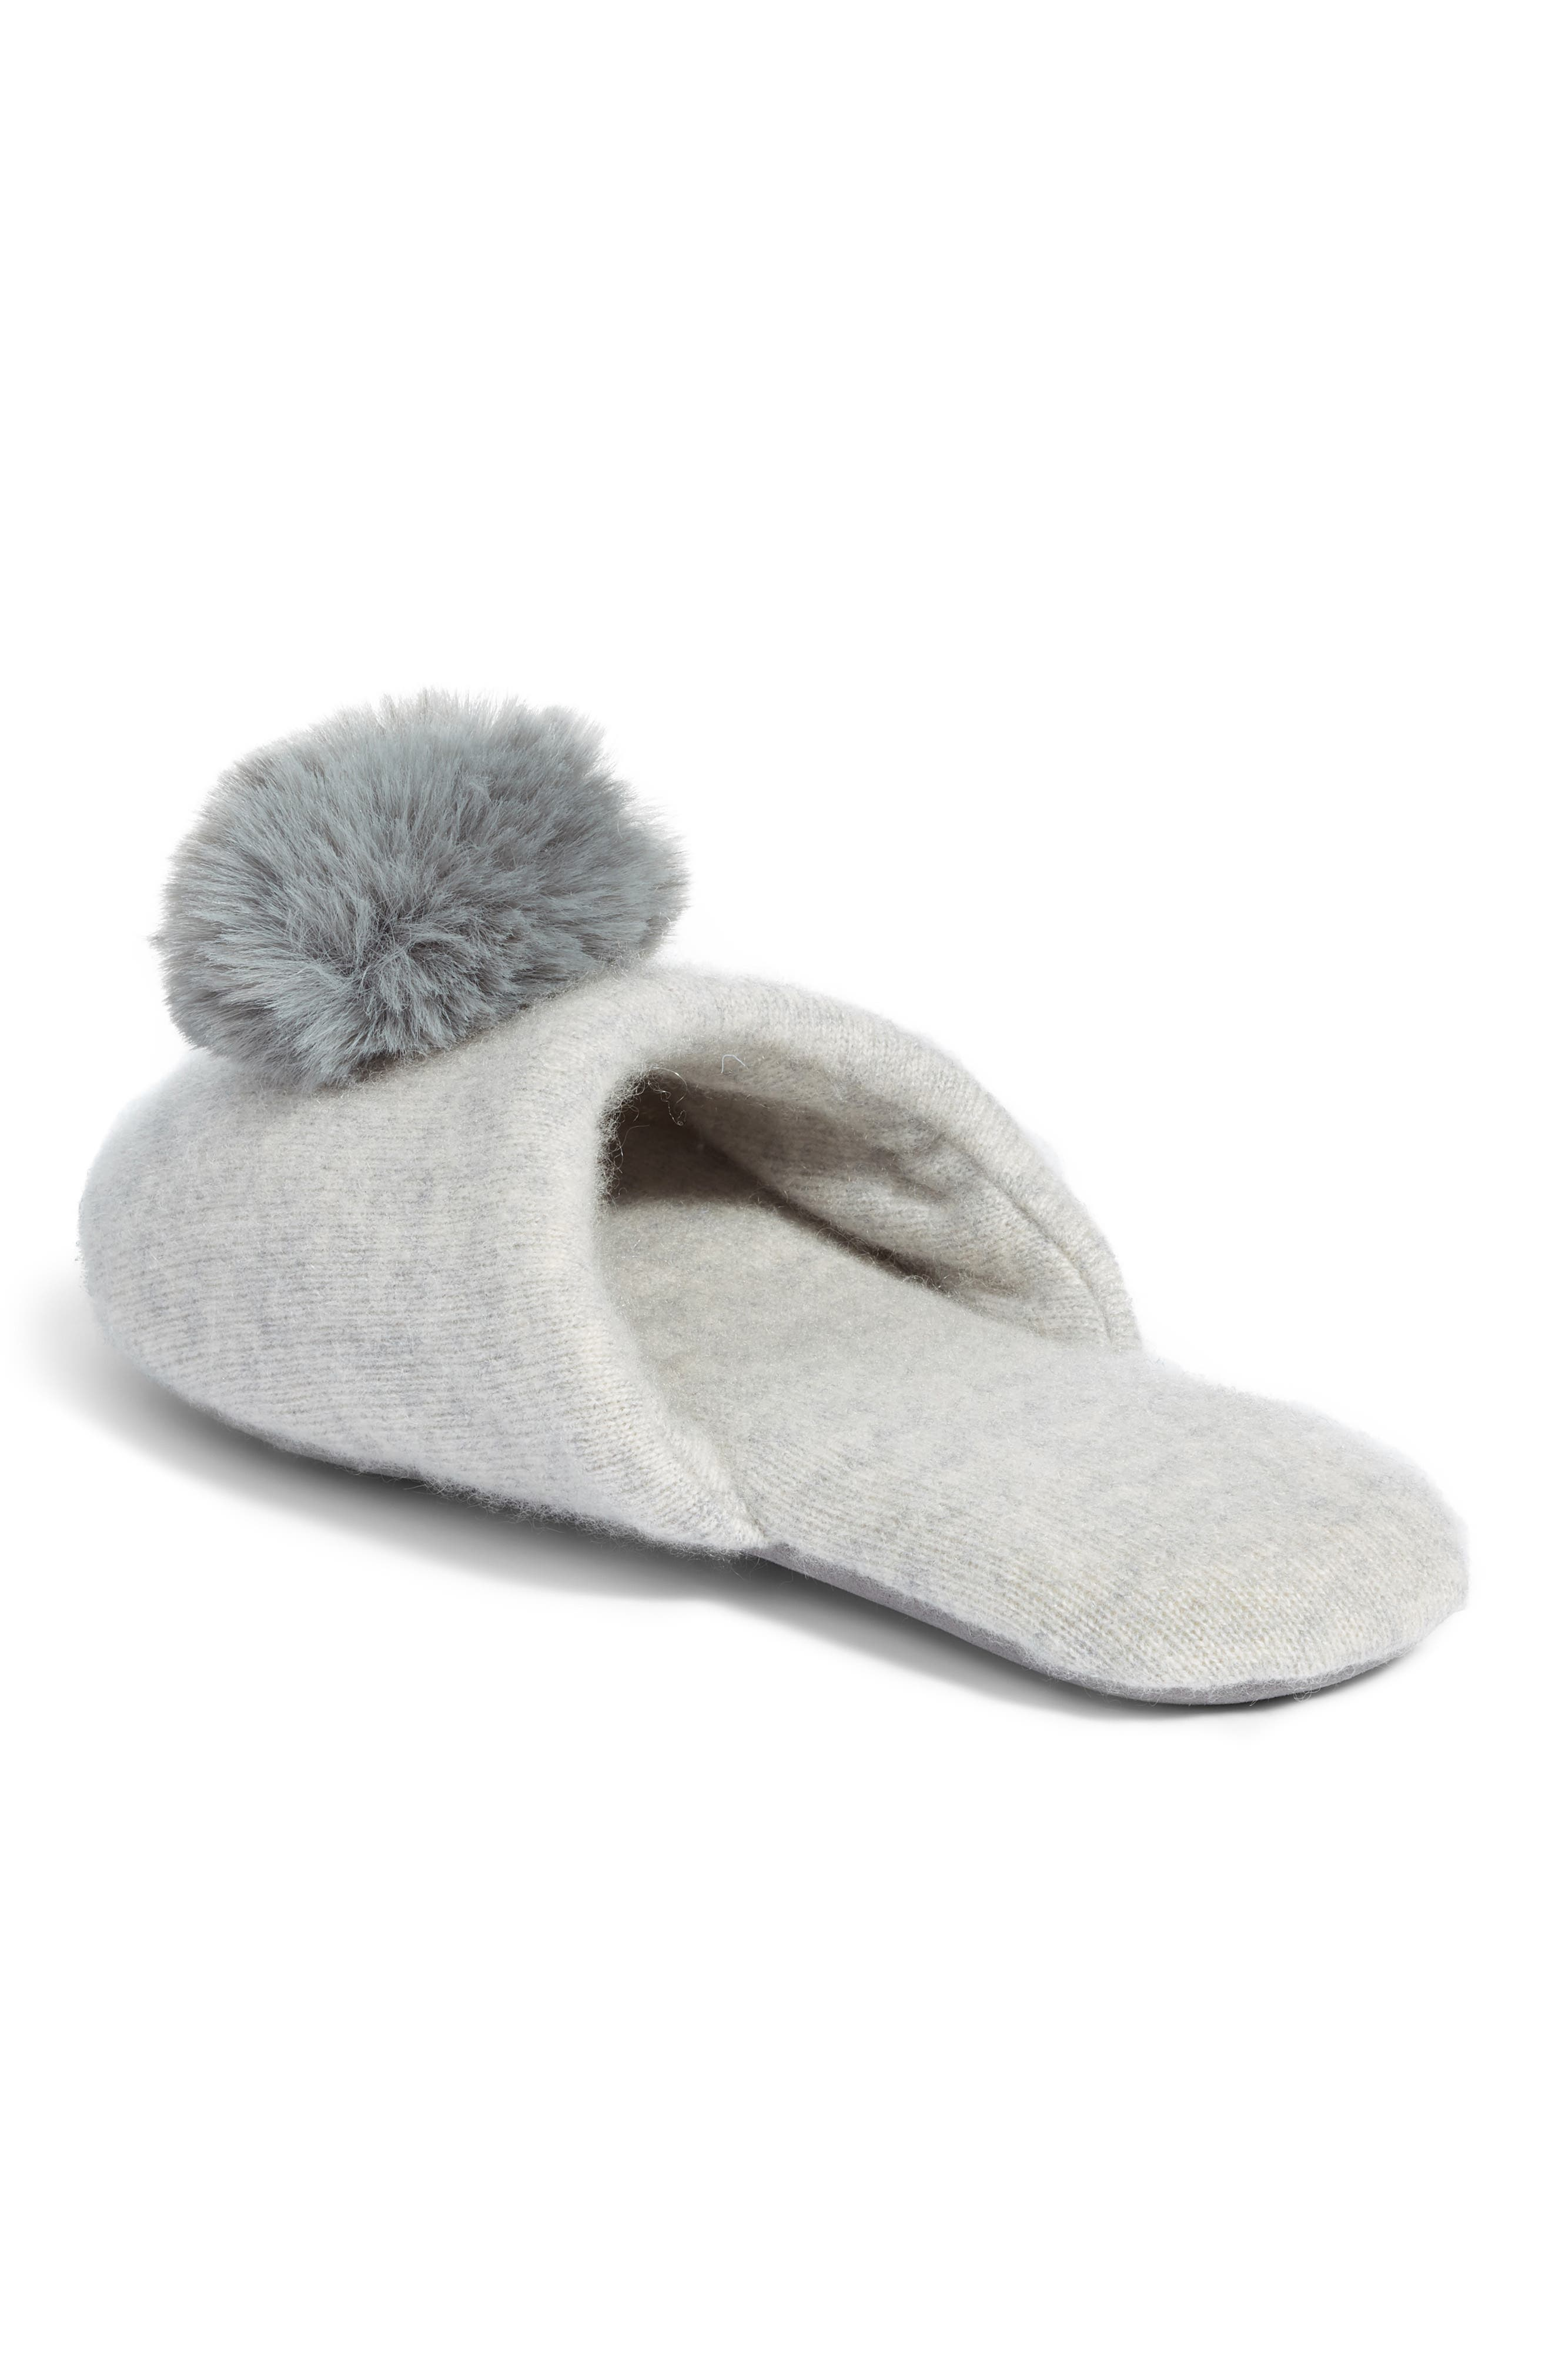 NORDSTROM,                             Wool & Cashmere Slippers with Faux Fur Pompom,                             Alternate thumbnail 2, color,                             GREY HEATHER